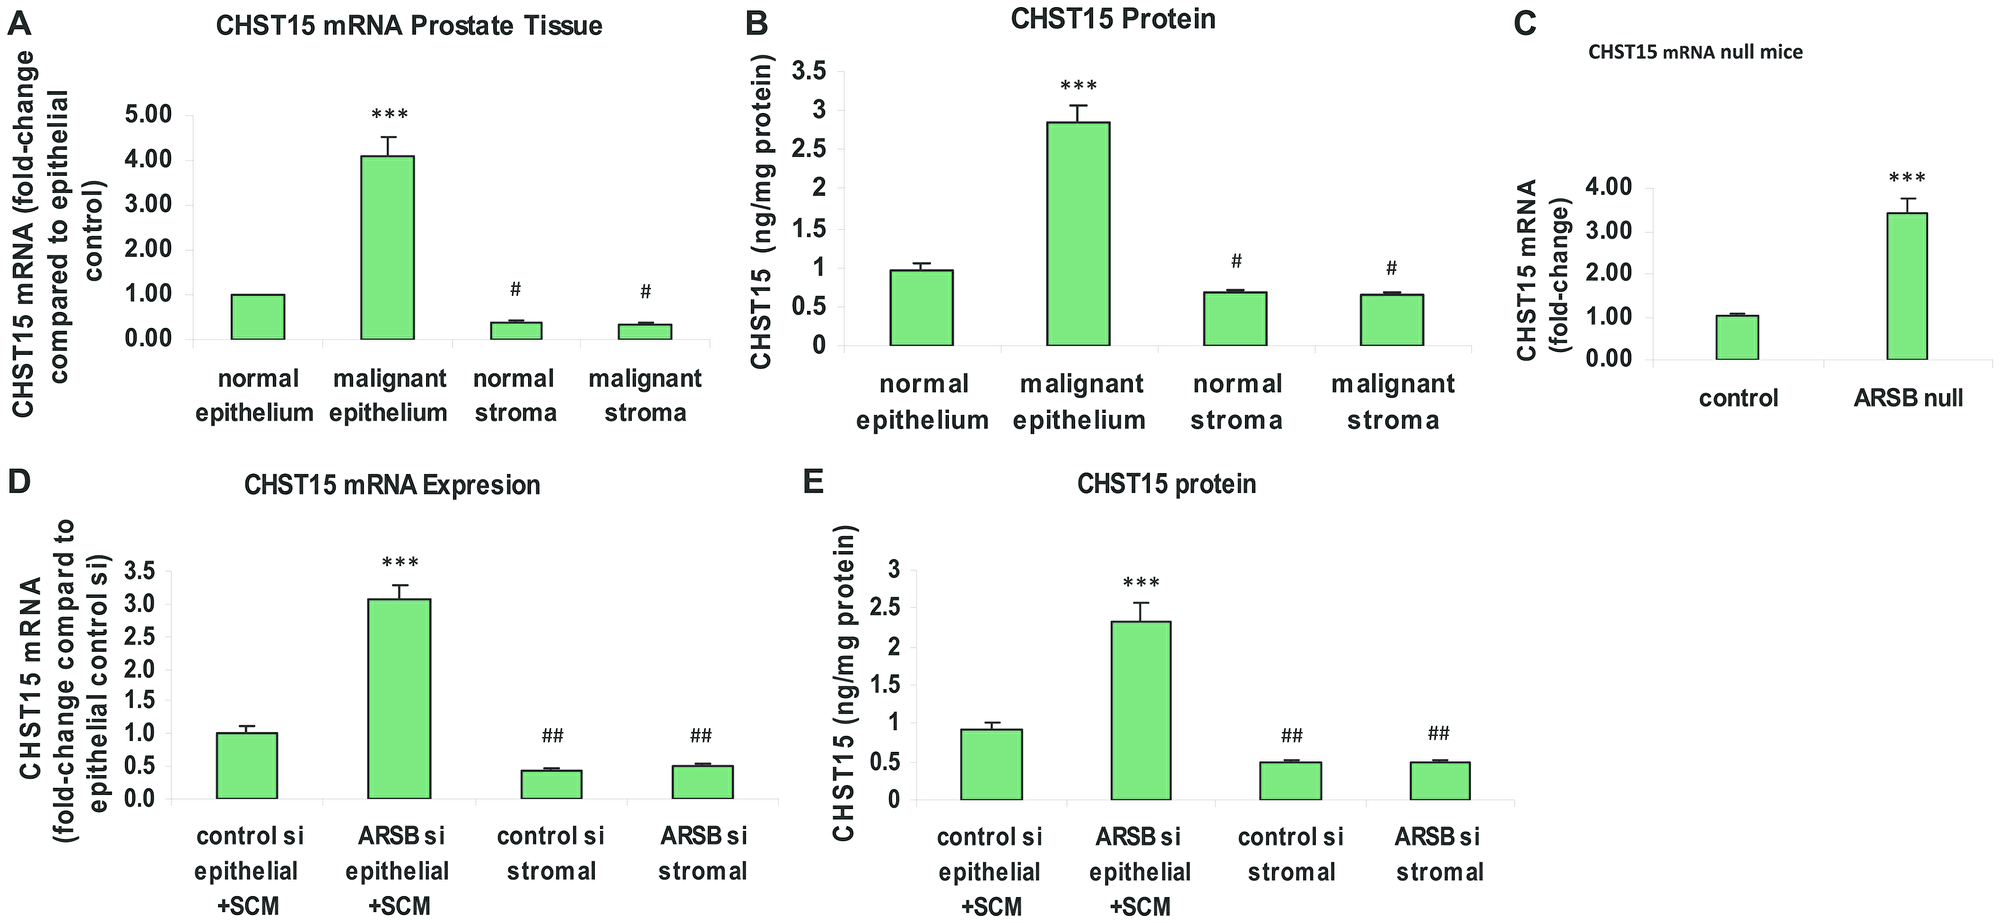 Chondroitin sulfotransferase (CHST) 15 (chondroitin 4-sulfate 6-O-sulfotransferase) is increased in malignant prostate epithelial tissue, in prostate tissue of ARSB-null mice, and in prostate epithelial cells when ARSB is reduced.